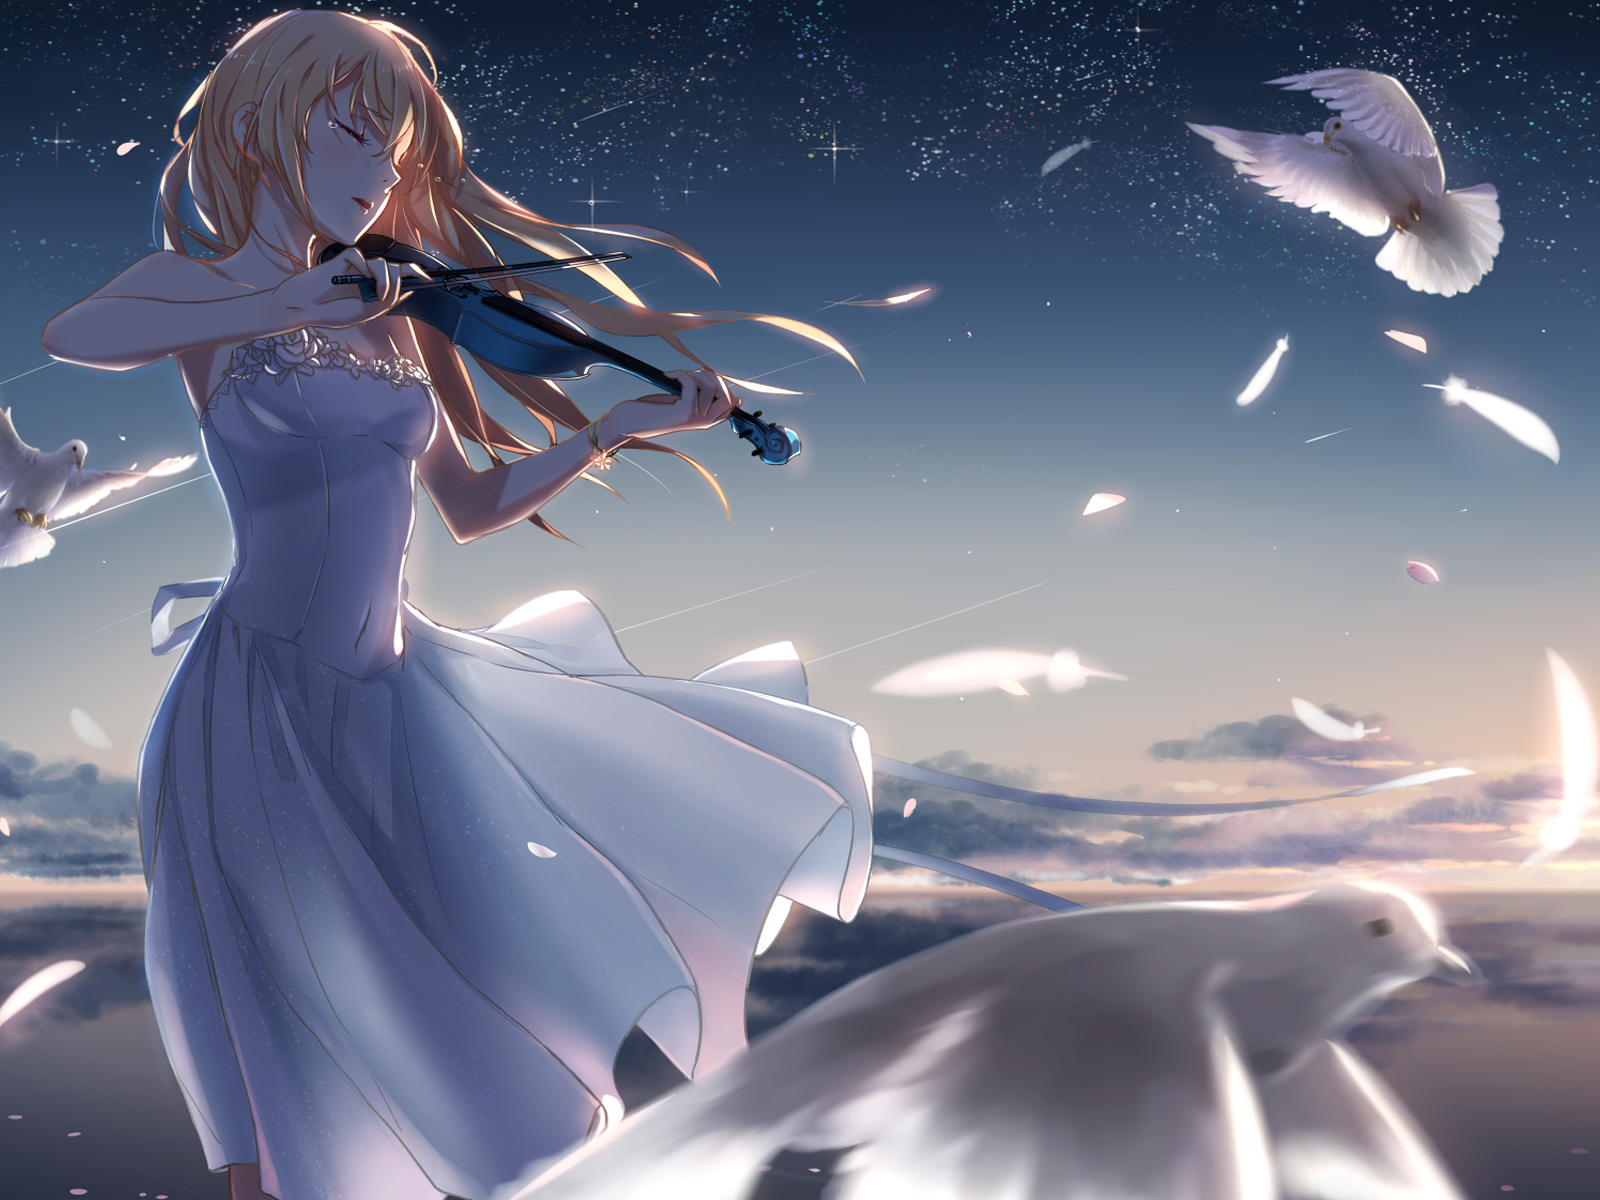 27 Wallpaper Hd Anime Shigatsu Wa Kimi No Uso Anime Top Wallpaper